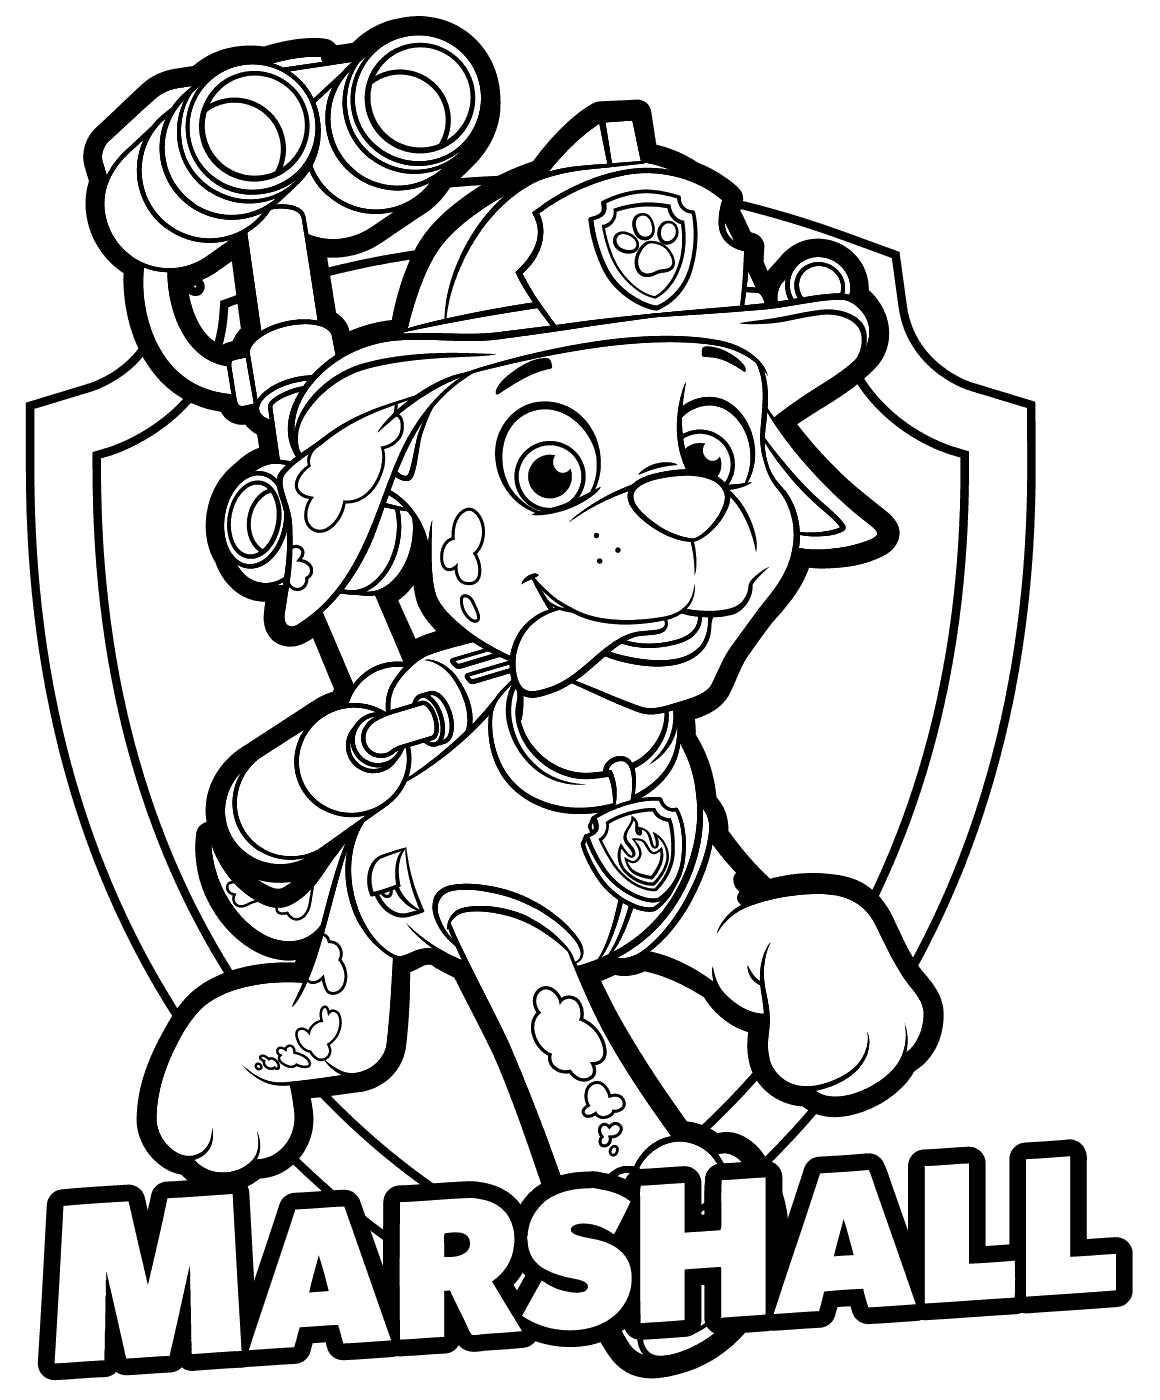 Marshall Paw Patrol Drawing at GetDrawings.com | Free for personal ...